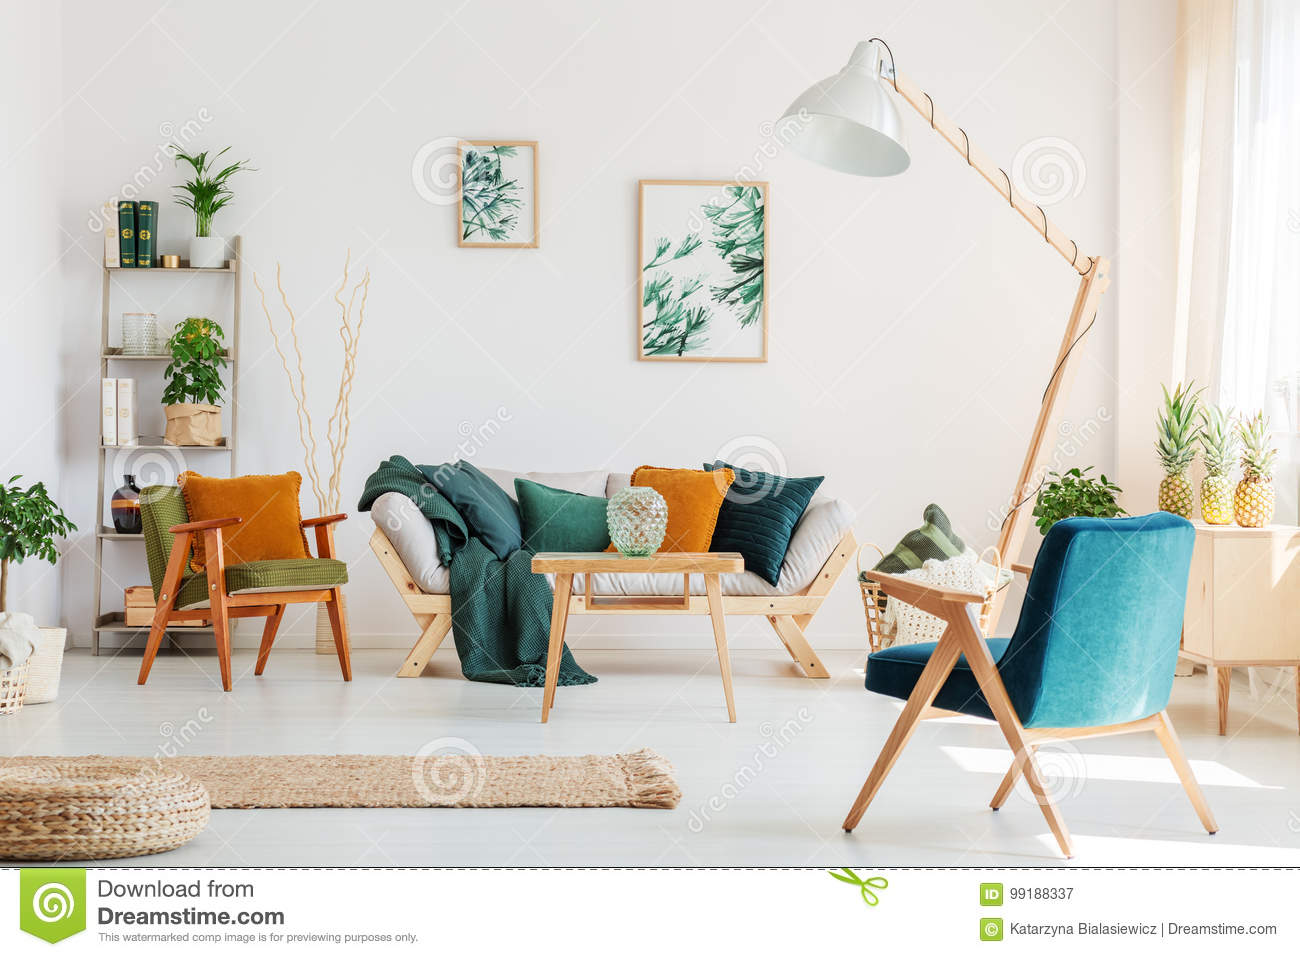 Living room with blue chair